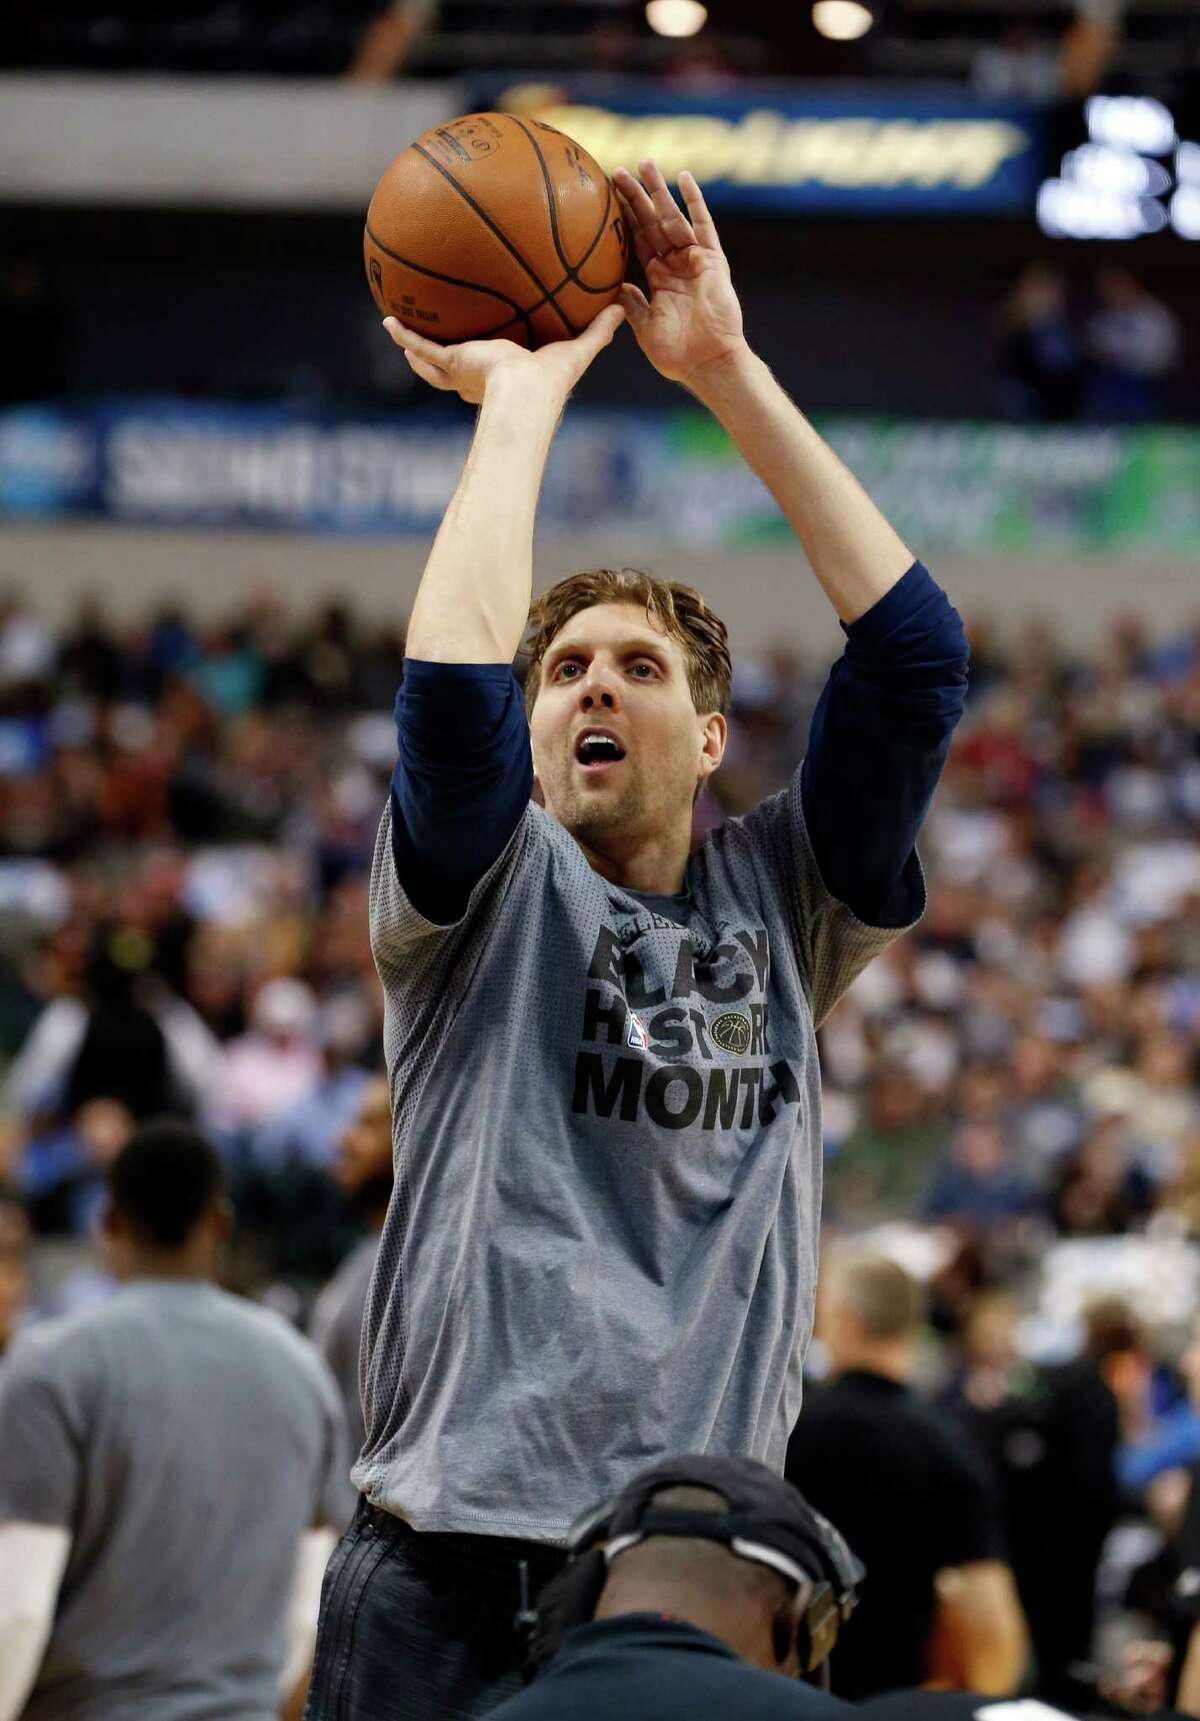 Dallas Mavericks forward Dirk Nowitzki warms up before the first half of an NBA basketball game against the San Antonio Spurs on Friday, Feb. 5, 2016, in Dallas. (AP Photo/Jim Cowsert)